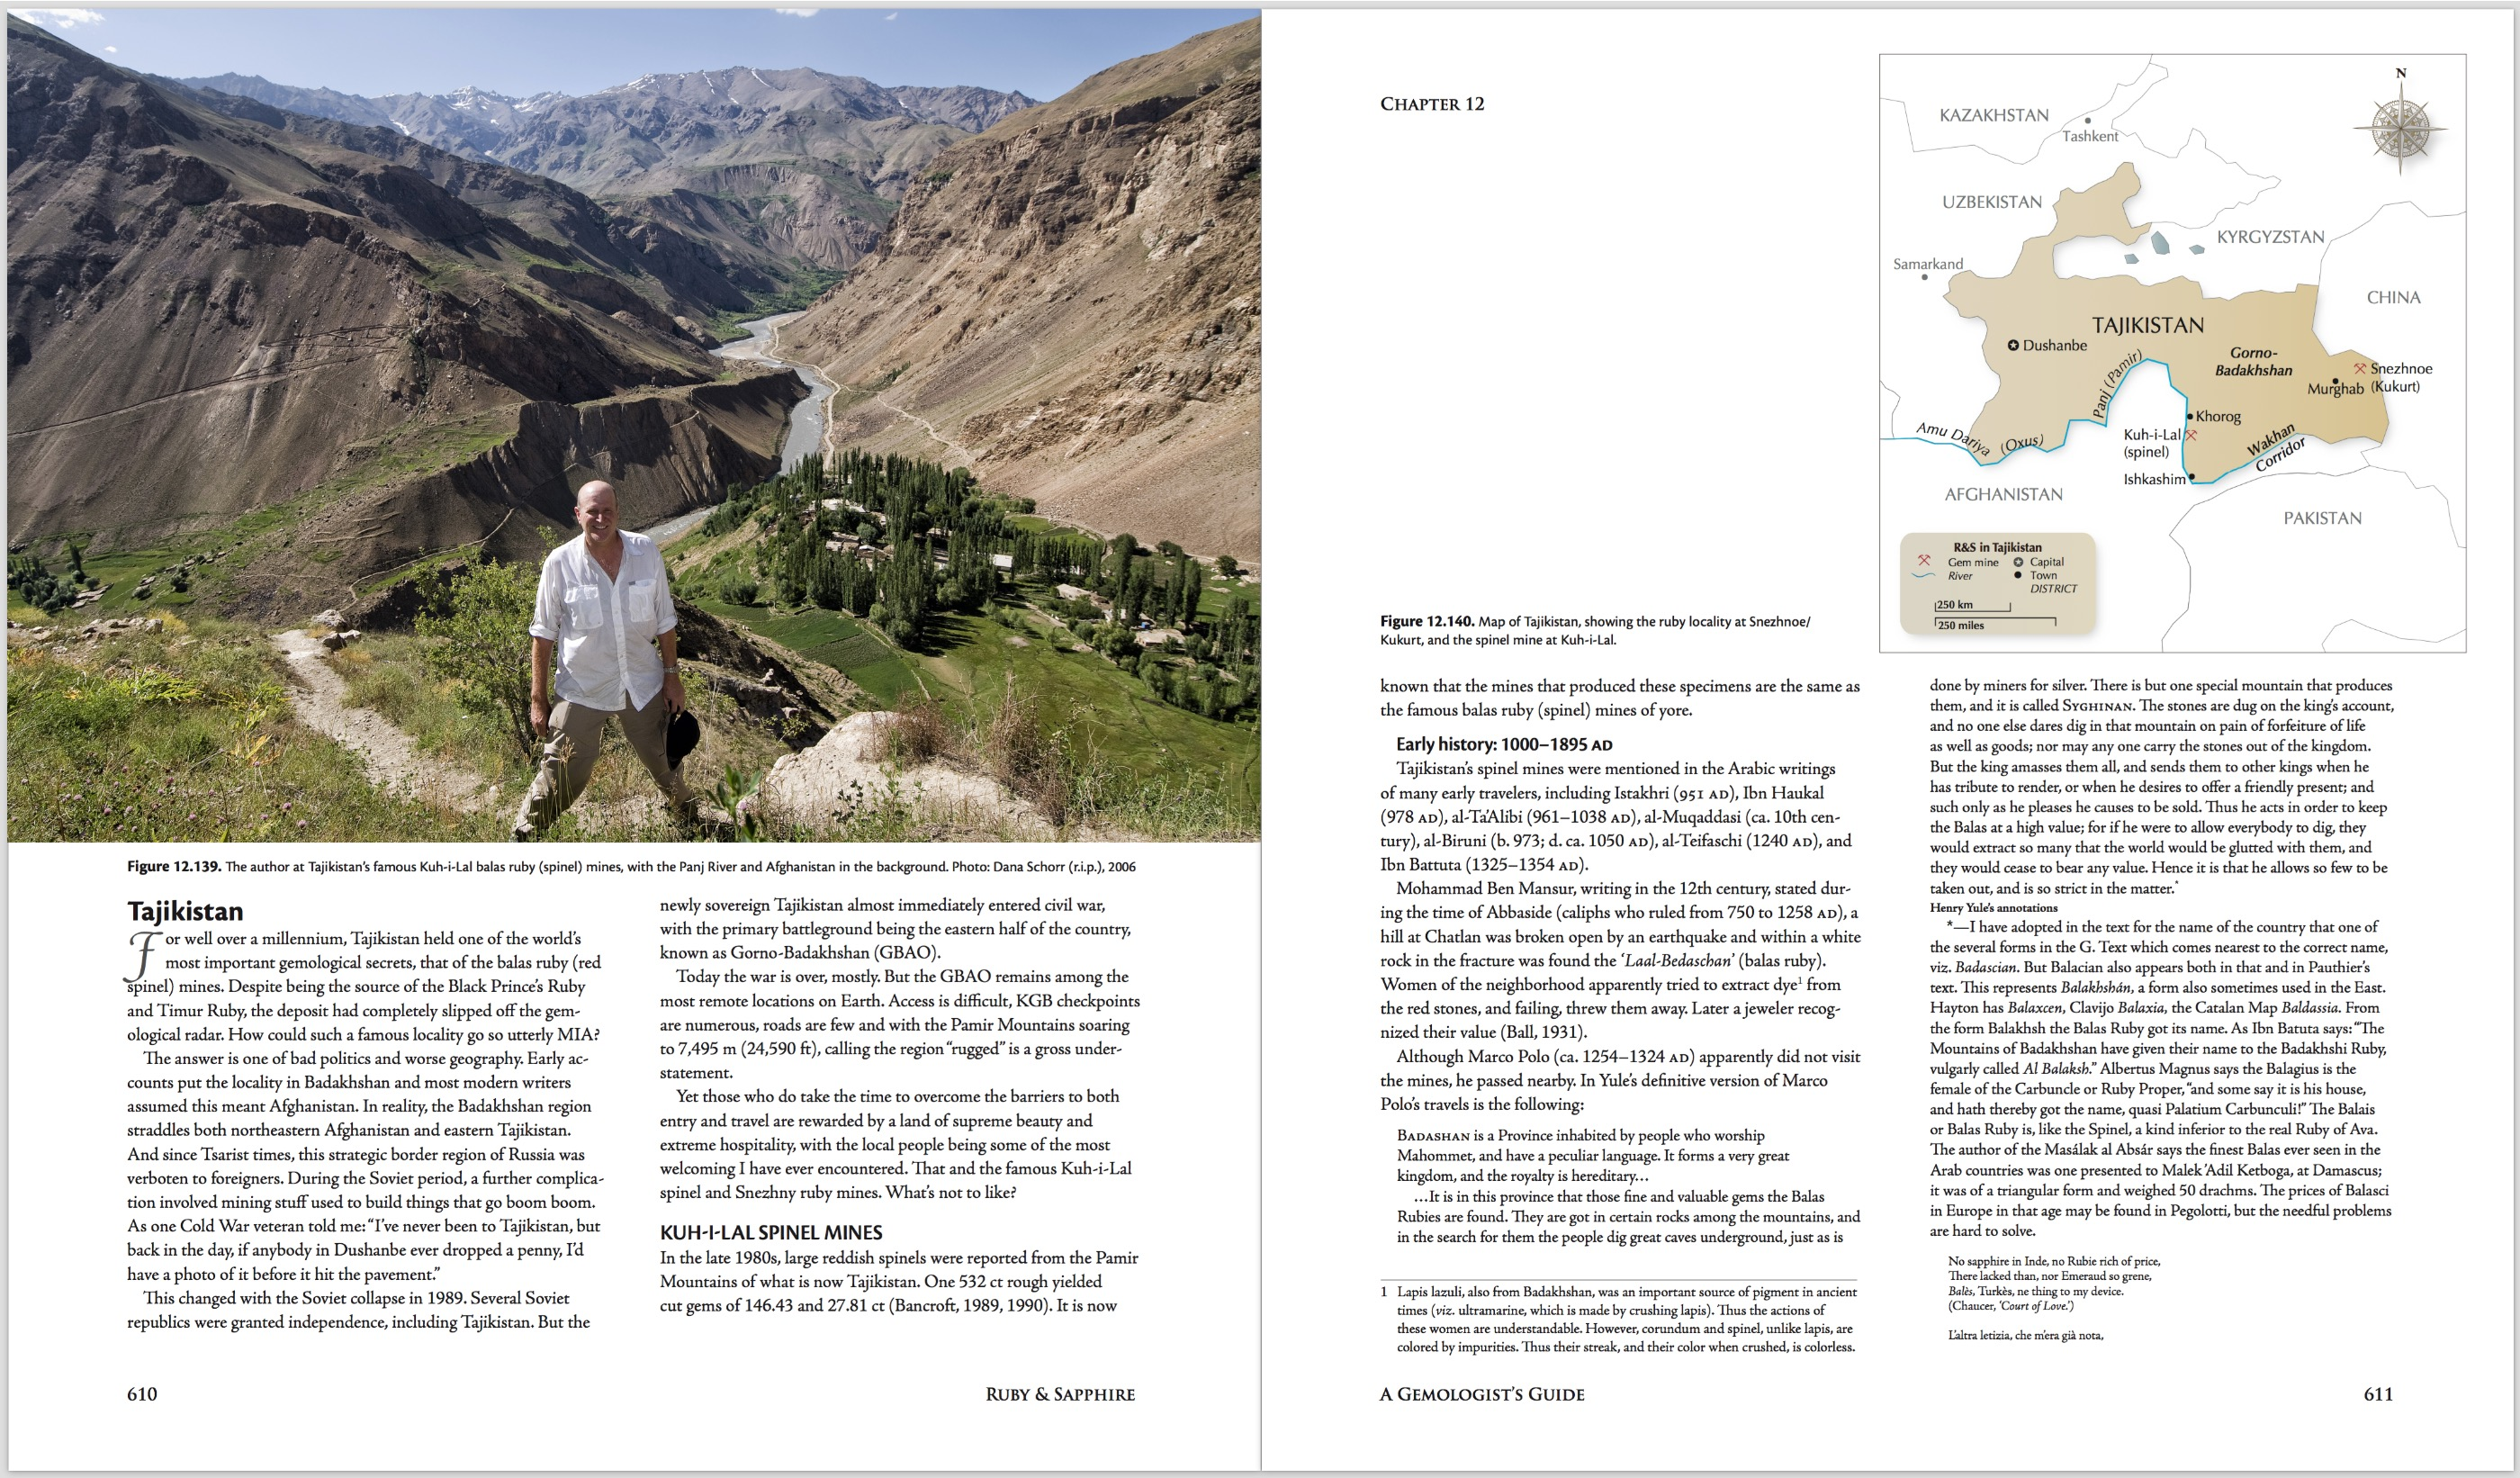 Ruby & Sapphire: A Gemologist's Guide – World Sources: Tajikistan